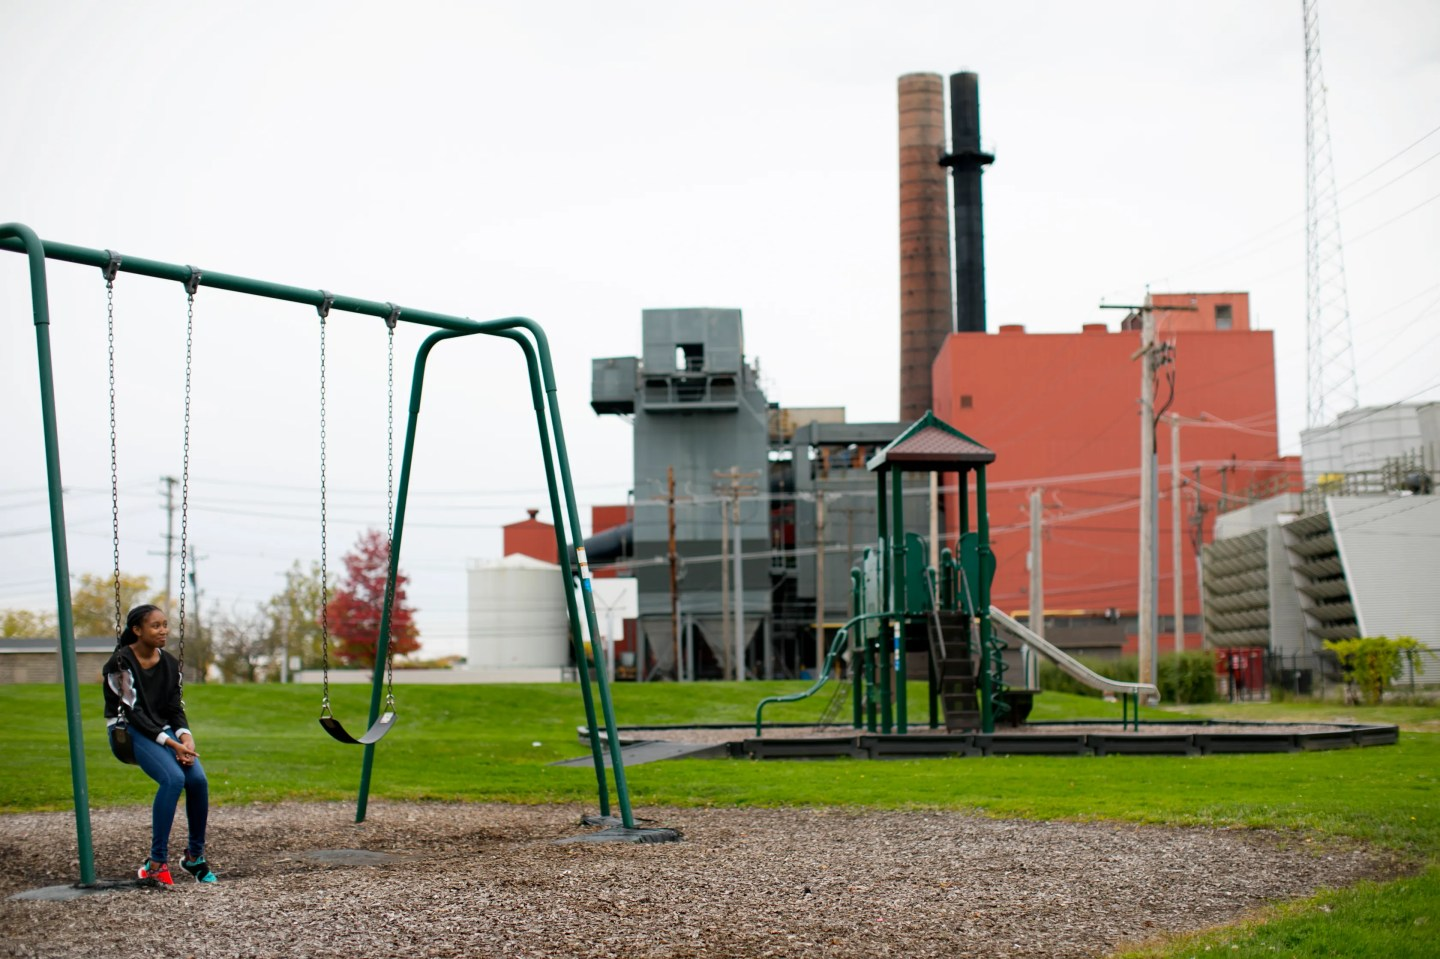 Armani Wells, 13, sits on a swing after school, just across from the city-owned power plant in Painesville, Ohio.